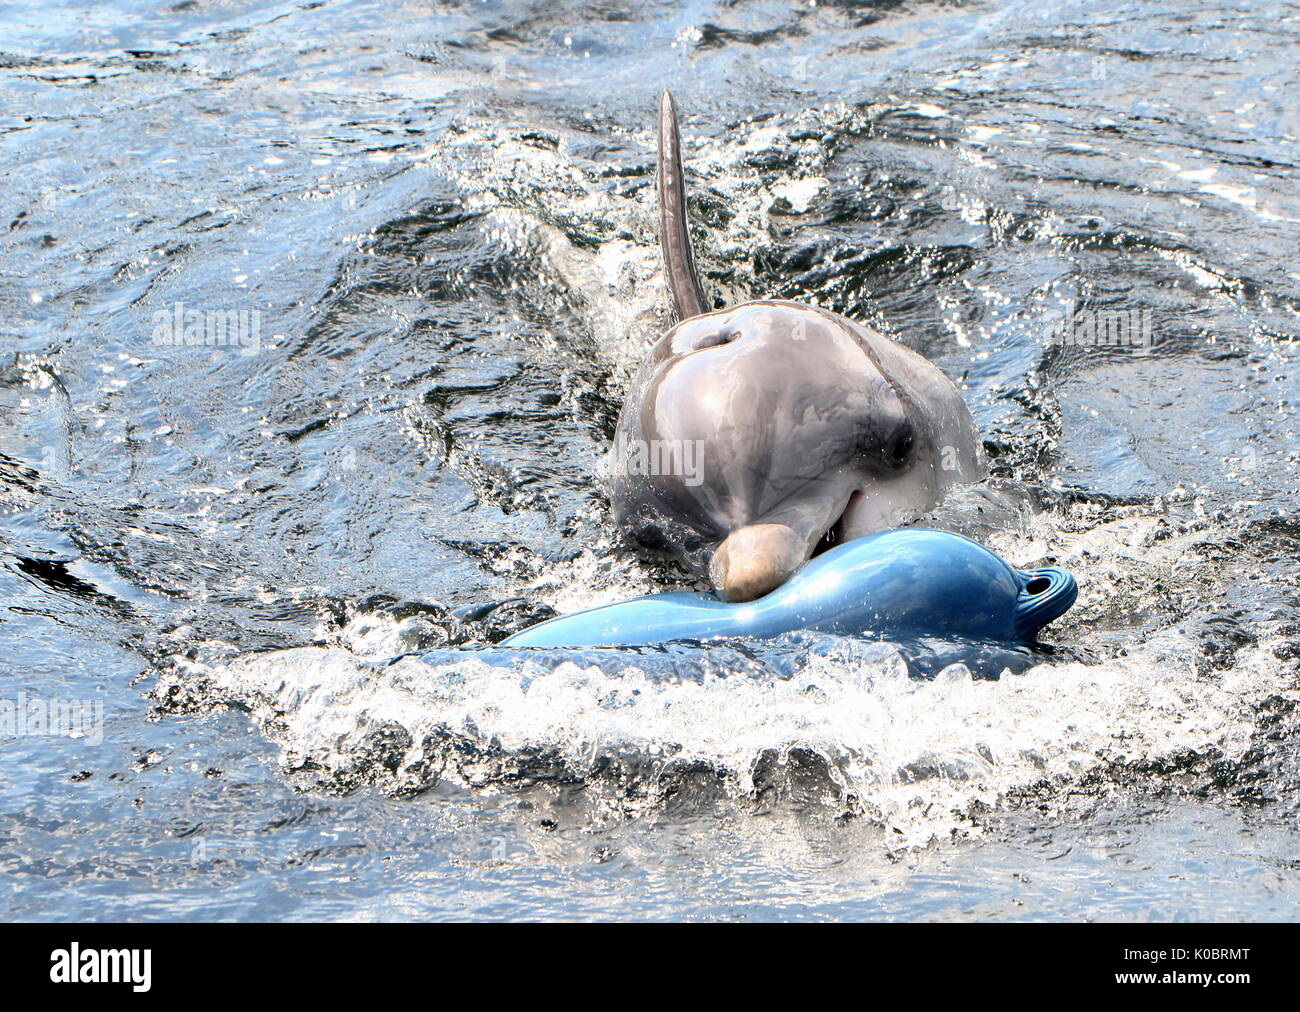 Atlantic Bottle-nose dolphin (Tursiops truncatus) surfacing, playing with a blue nautical buoy. - Stock Image